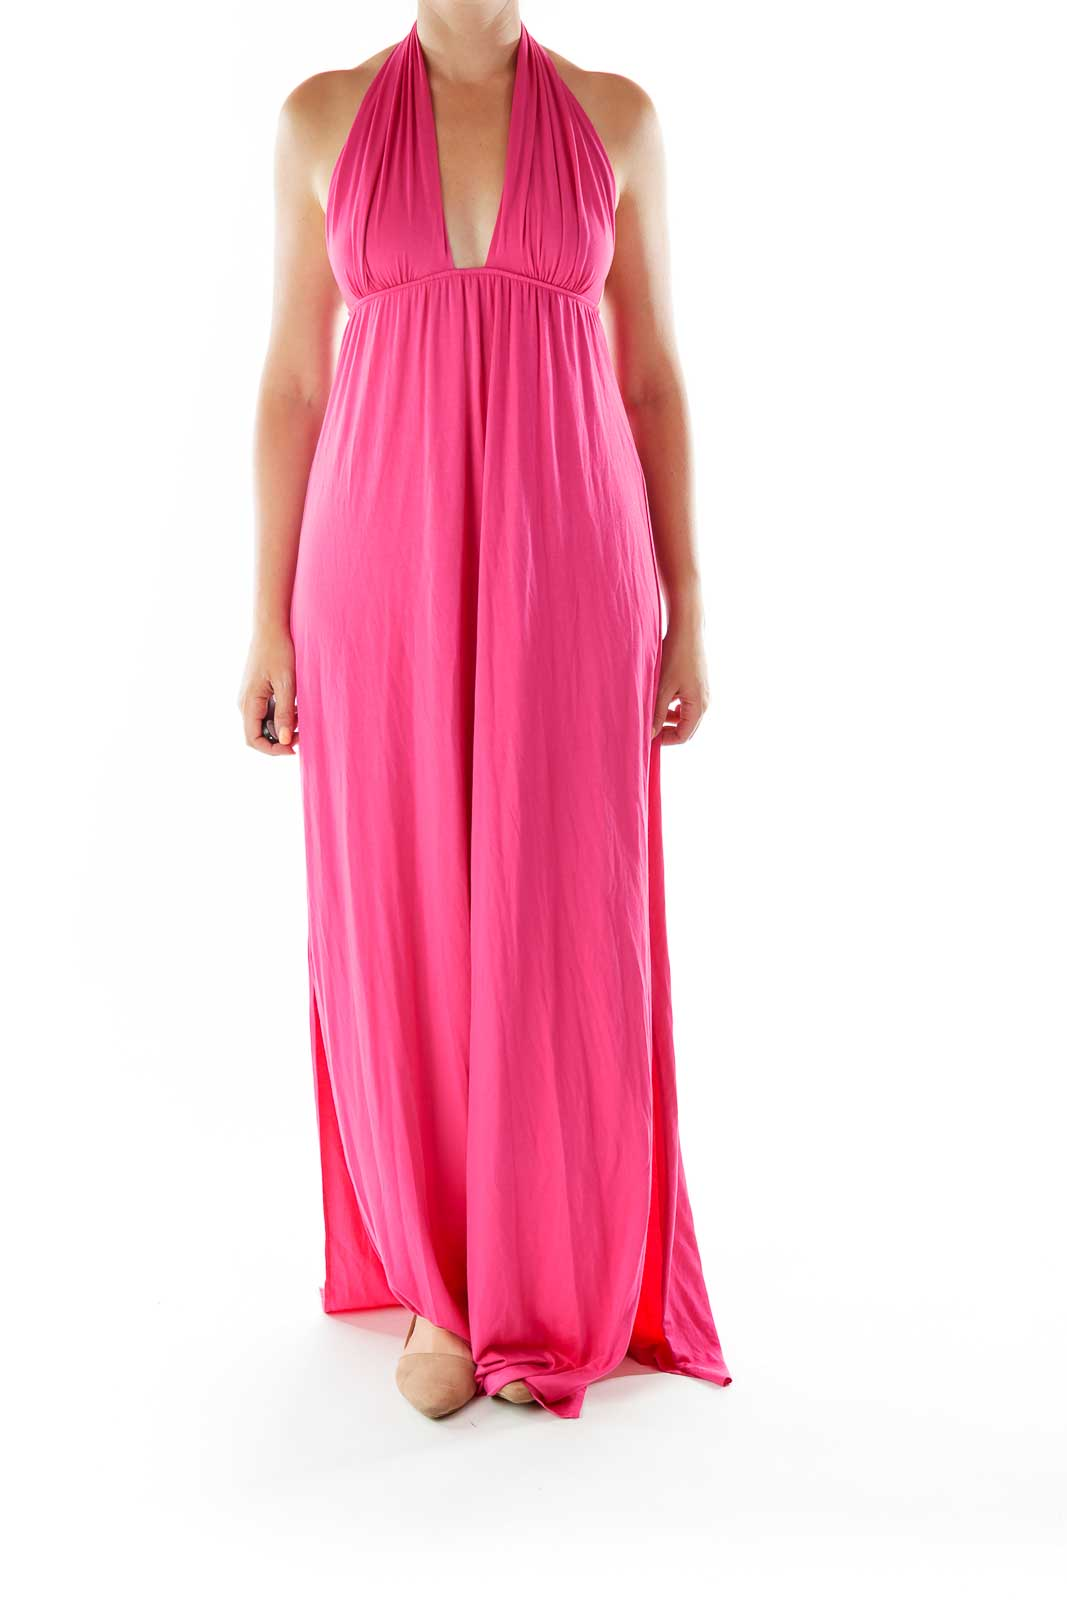 Hot Pink Strapless Day Dress